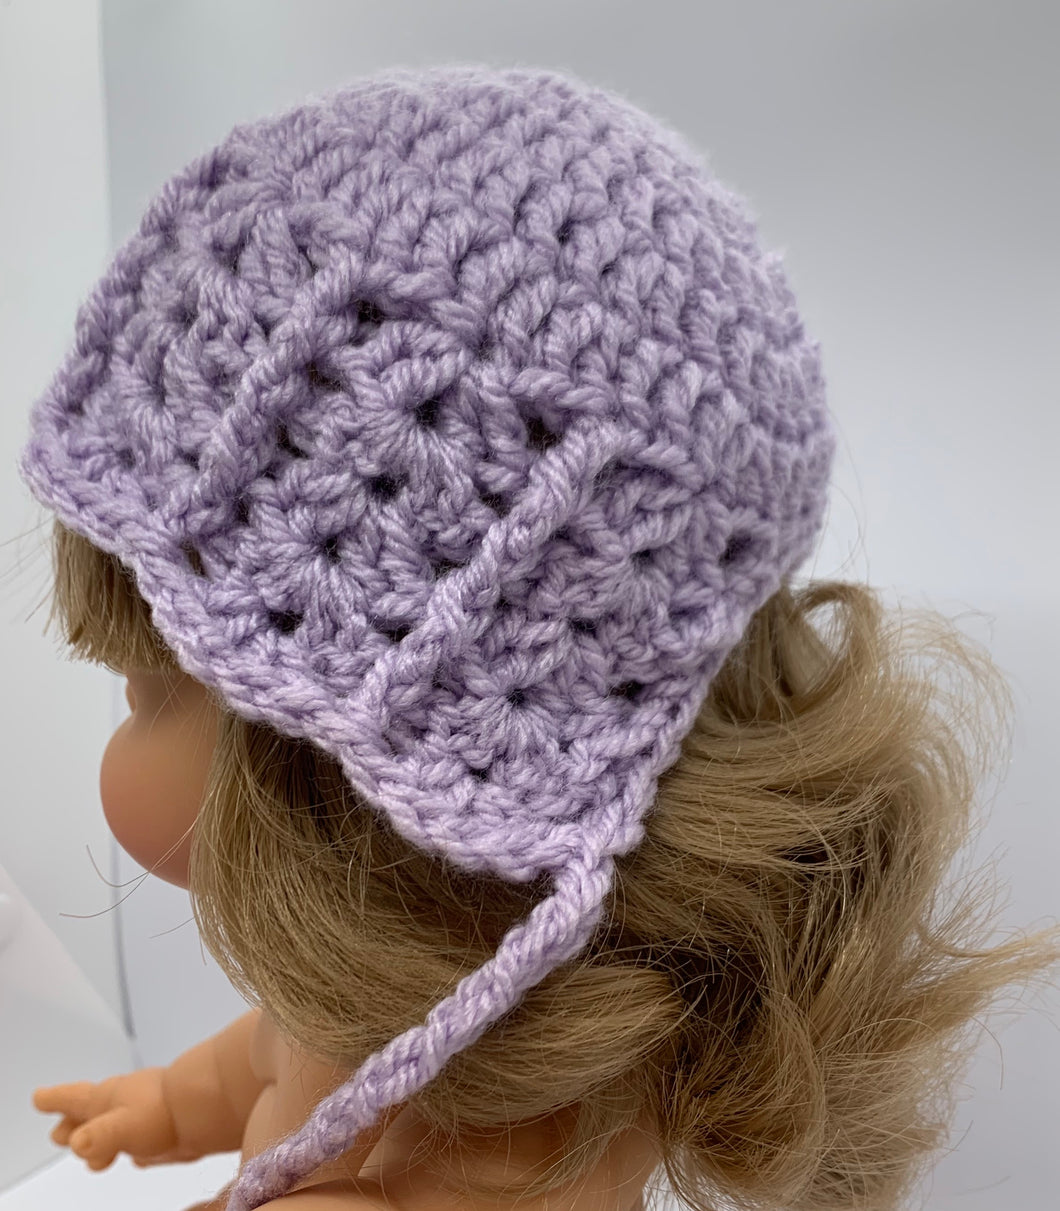 The Wave Bonnet in Lilac